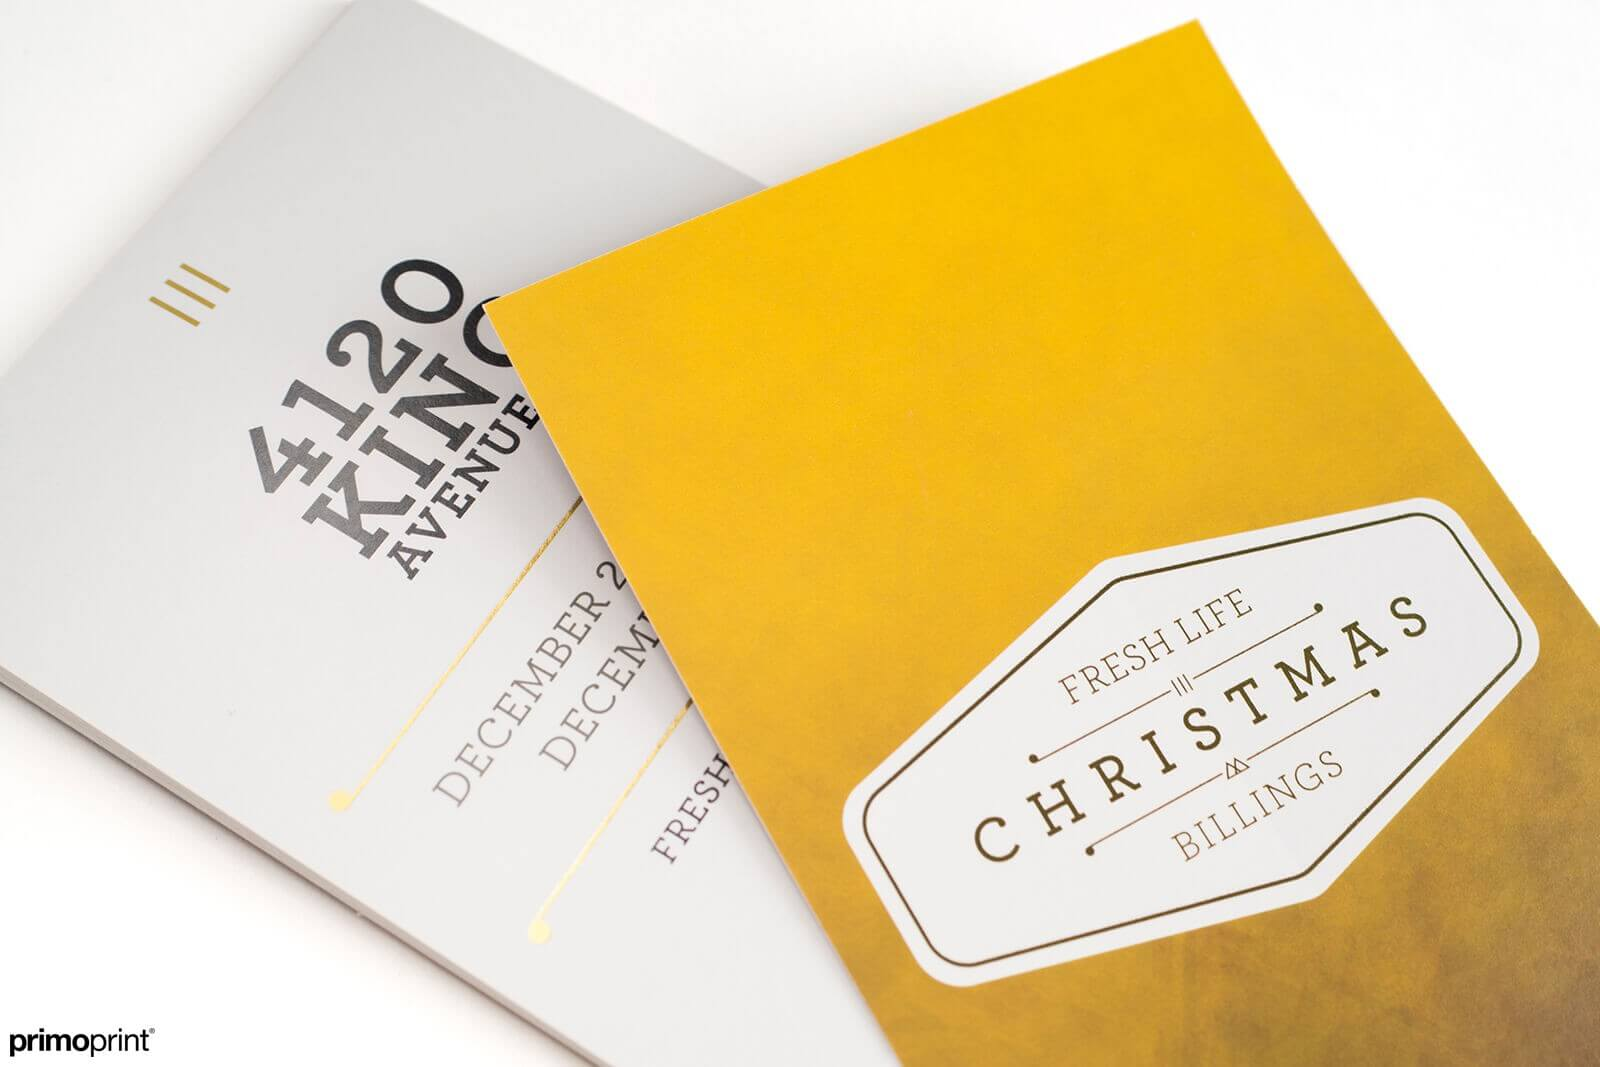 16PT Uncoated Inline Foil Postcard Printed by Primoprint